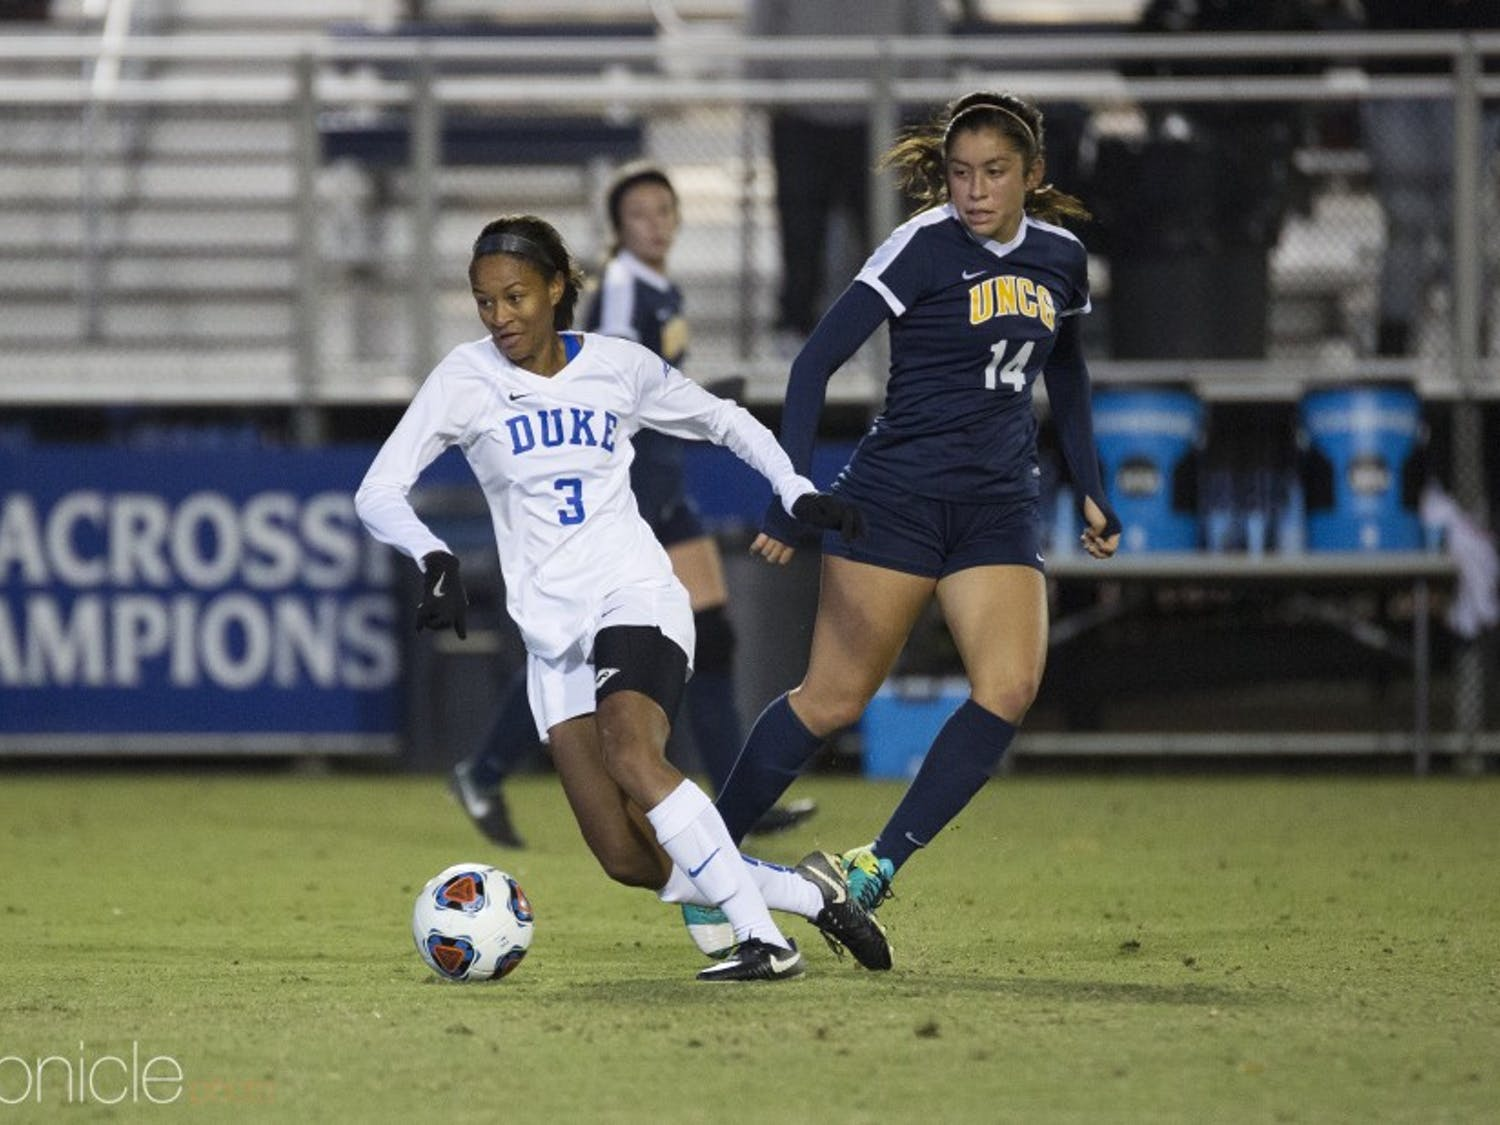 Imani Dorsey scored Duke's only goal from just outside the box into the right side of the net.